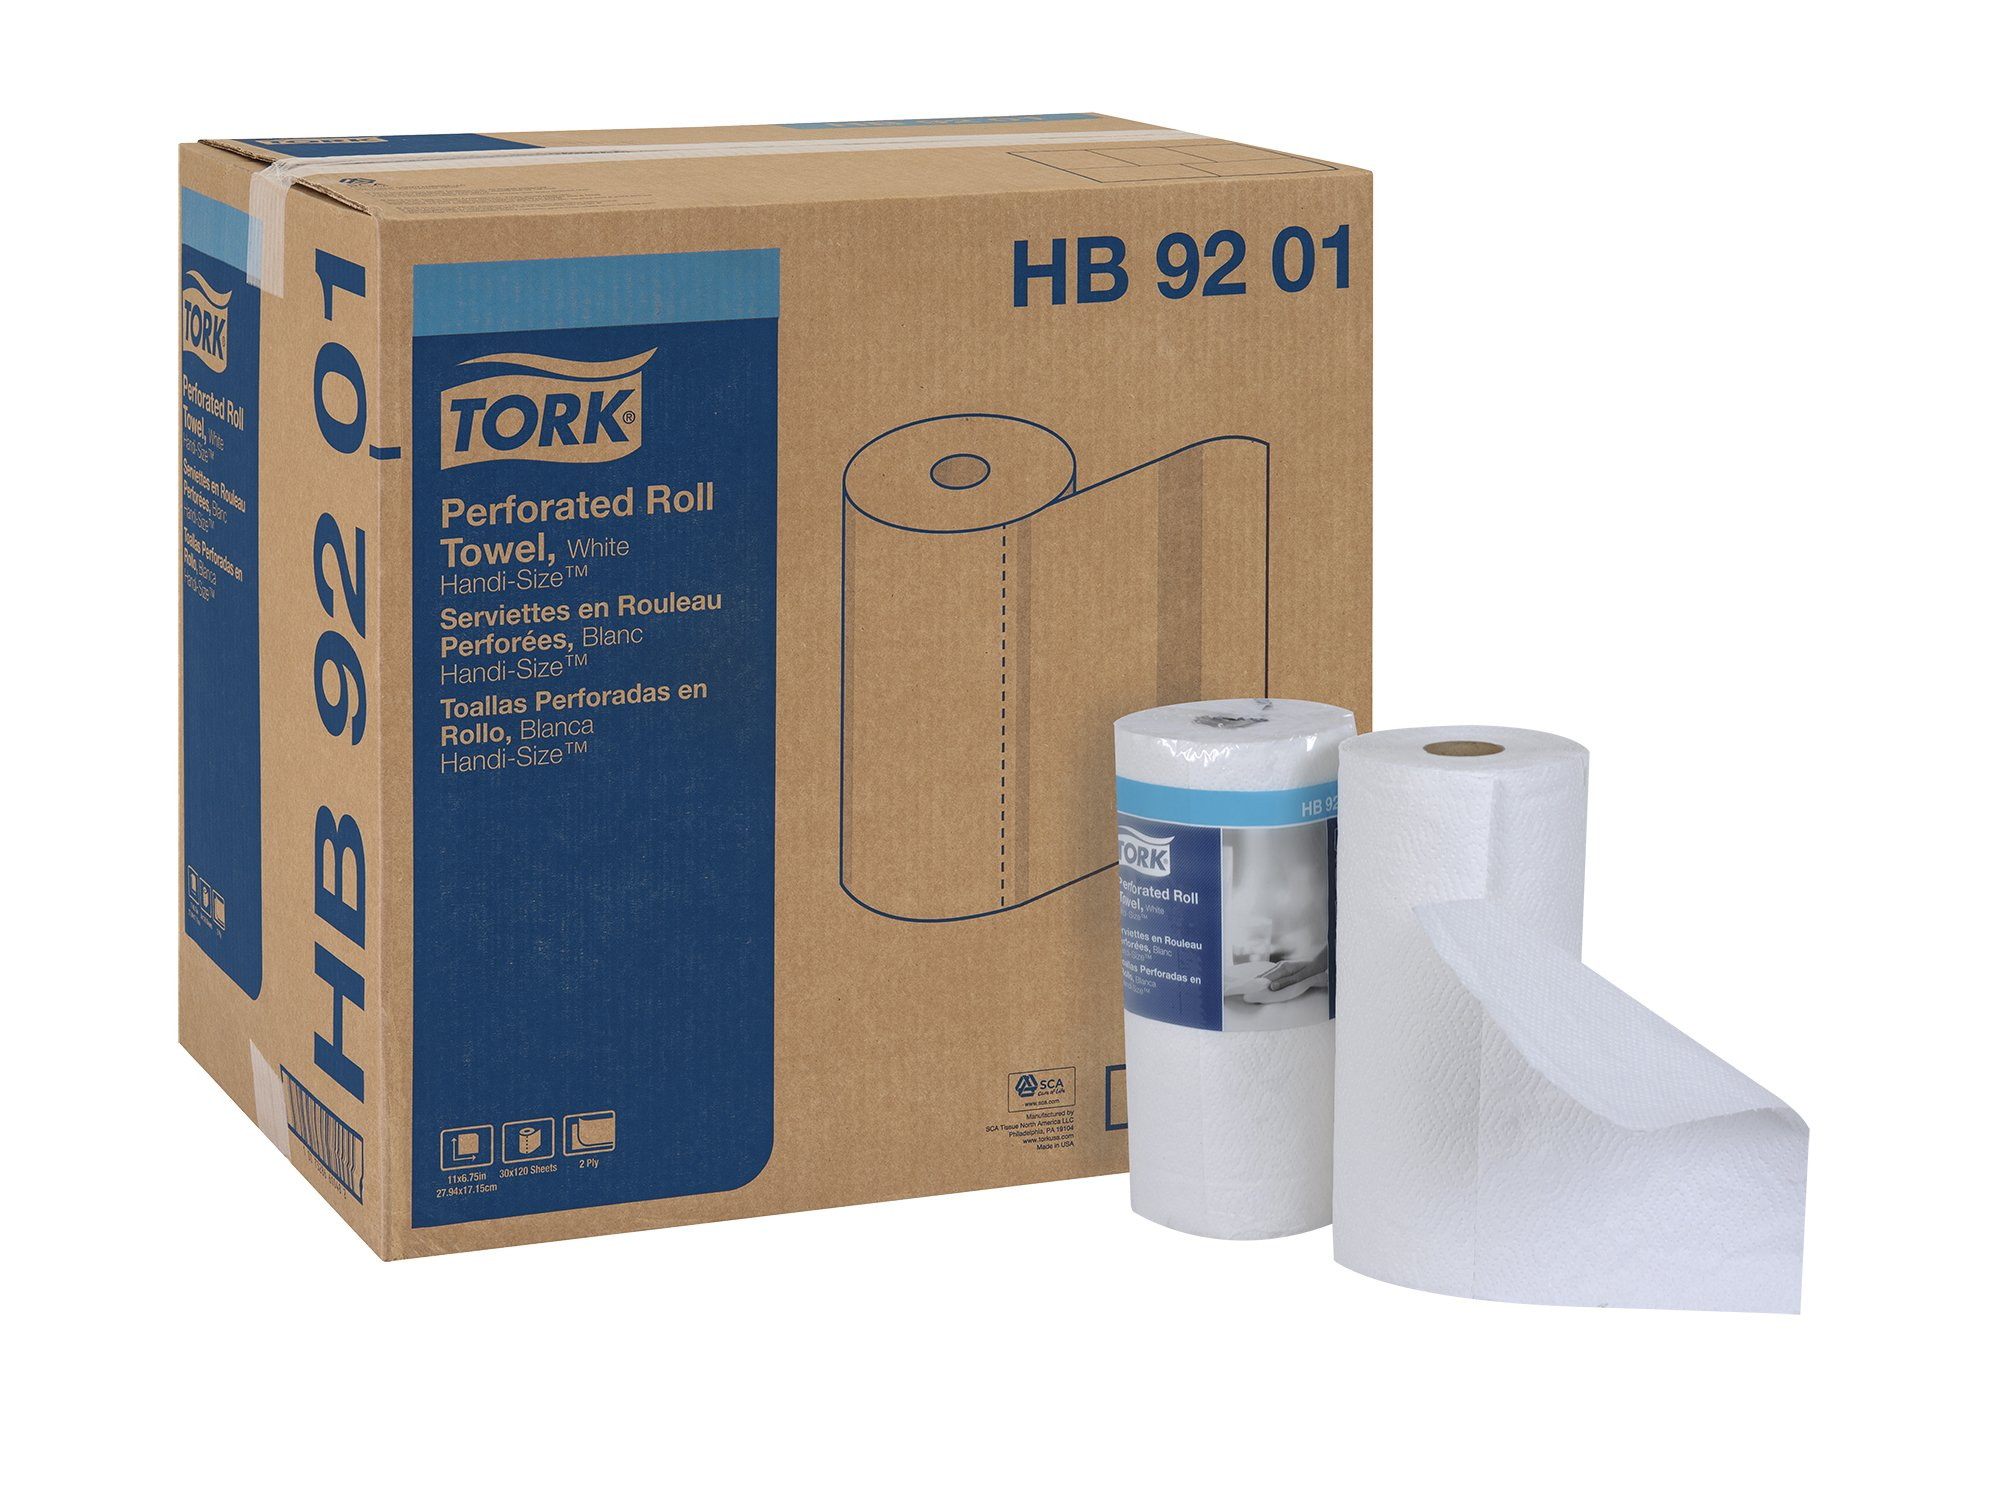 Tork HB9201 Handi-Size Perforated Paper Roll Towel, 2-Ply, 11'' Width x 6.75'' Length, White (Case of 30 Rolls, 120 per Roll, 3,600 Towels)